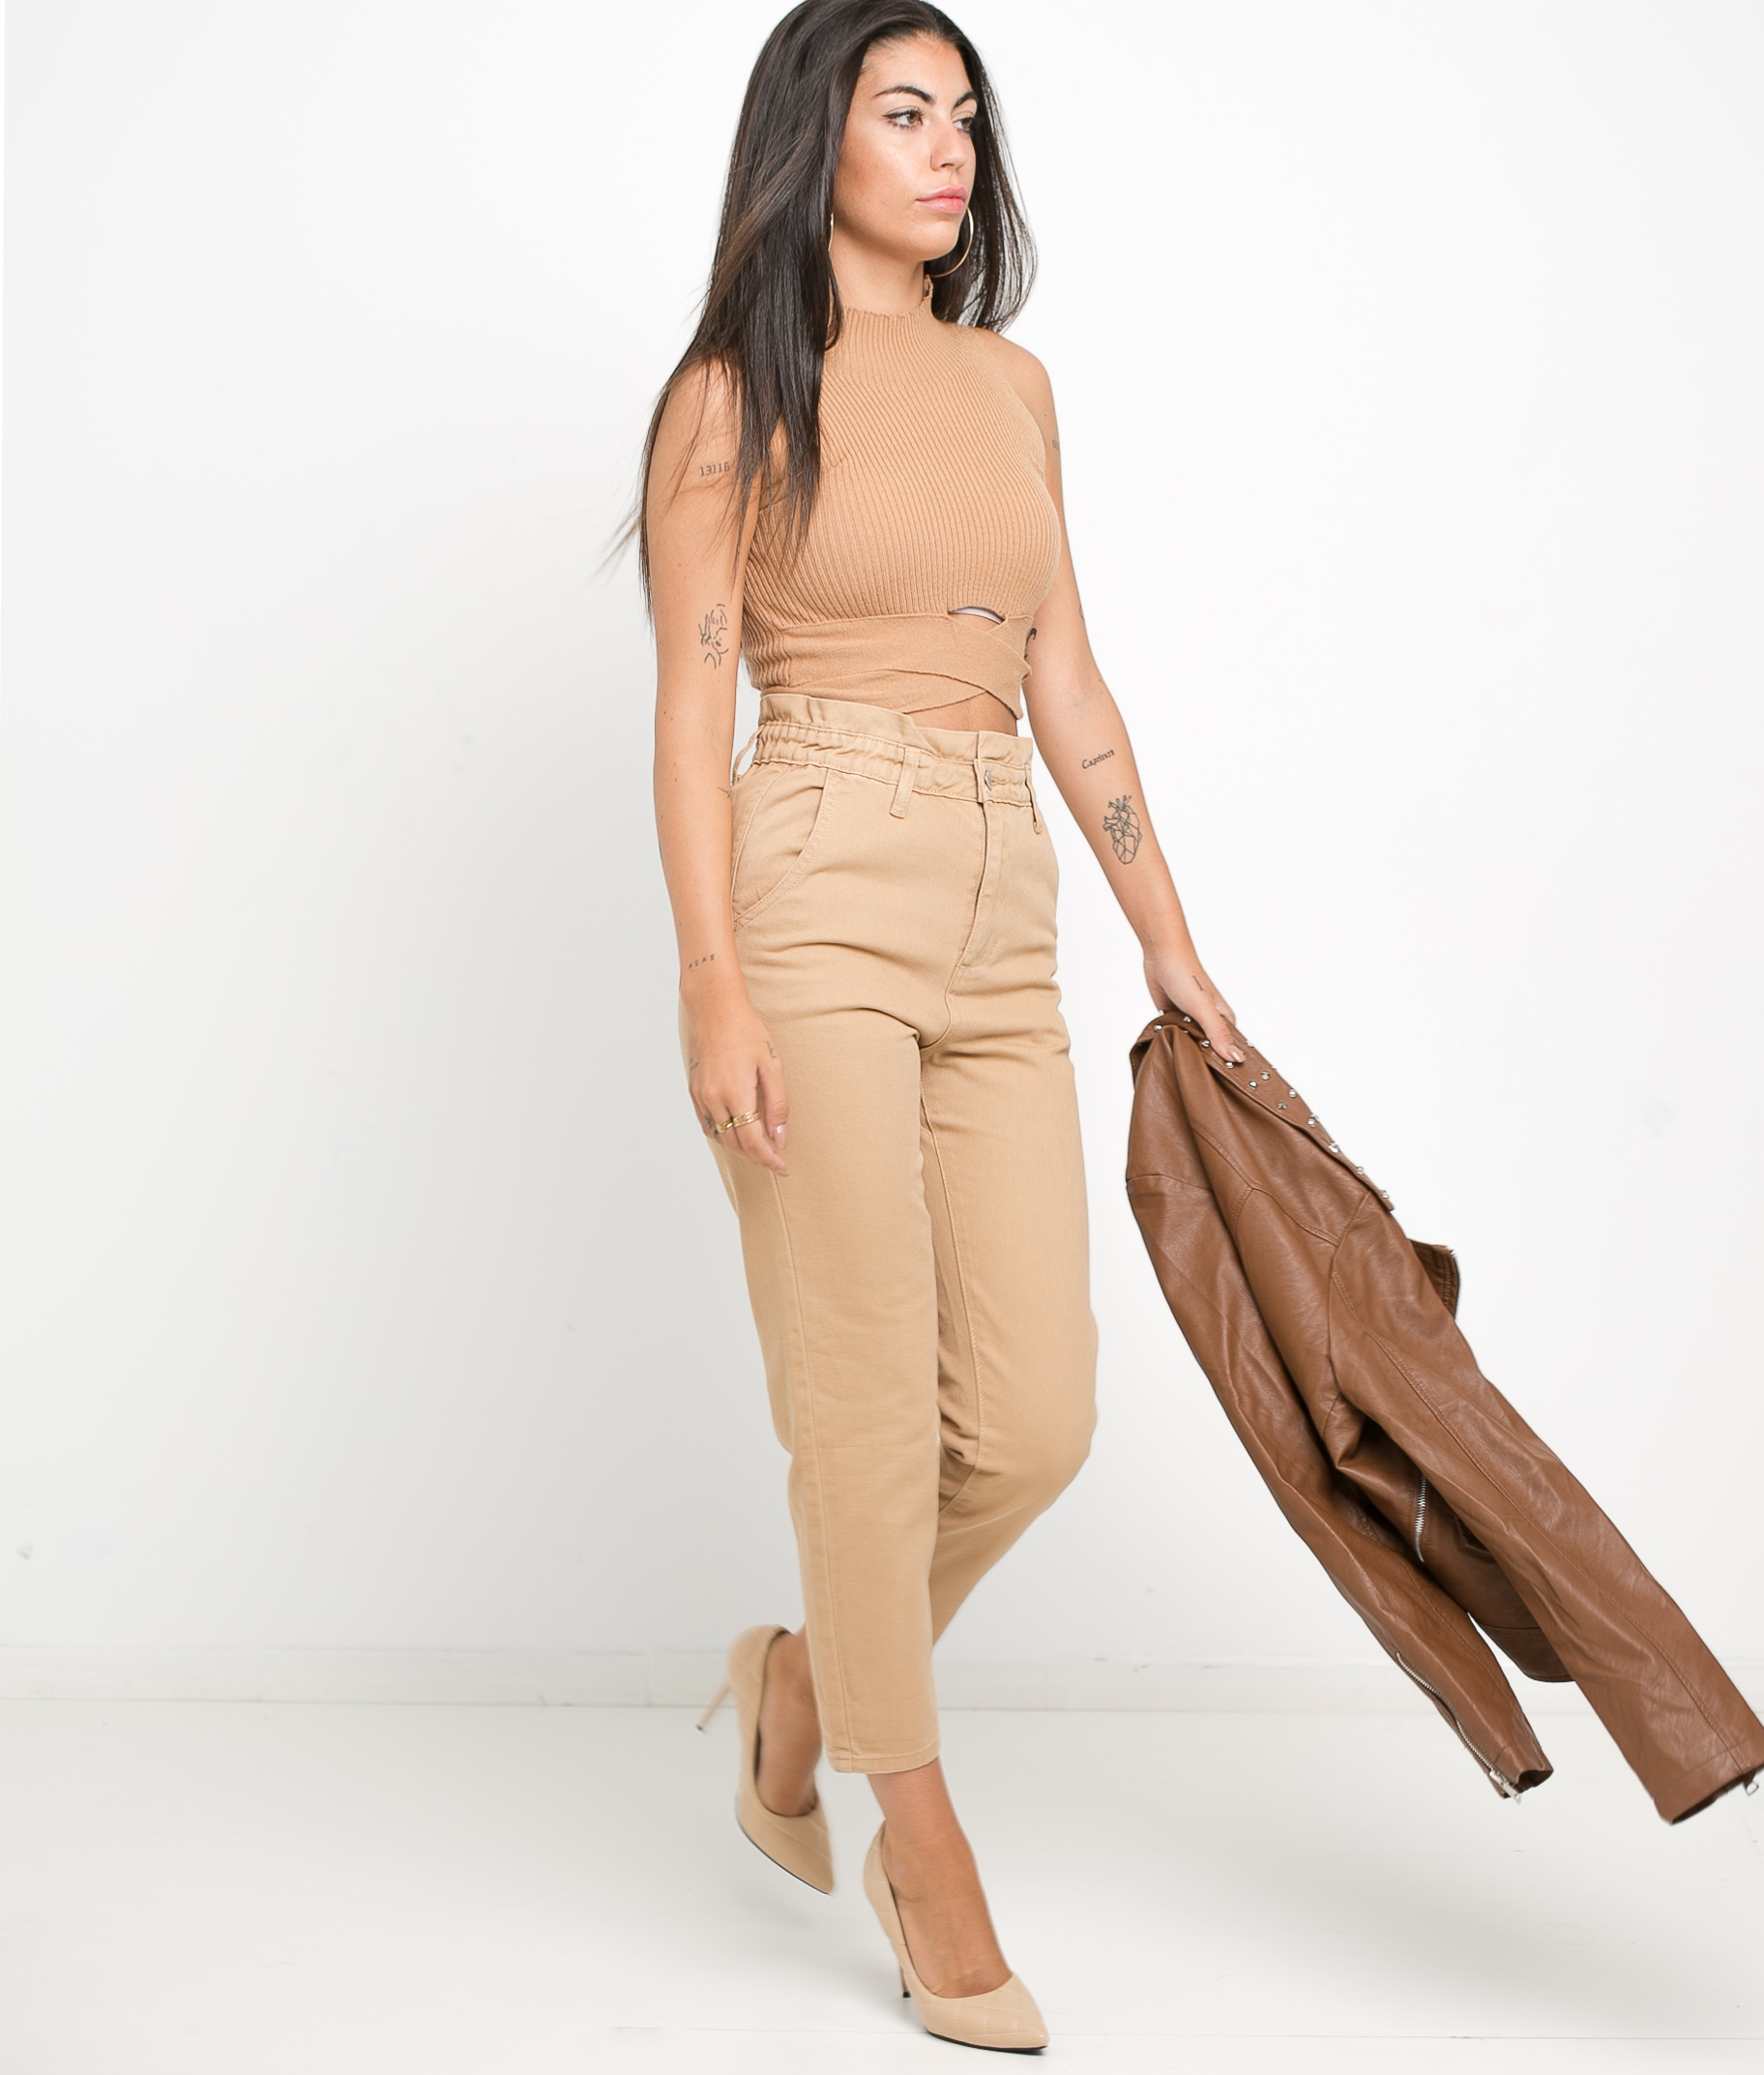 CLEVE TROUSERS - BEIGE